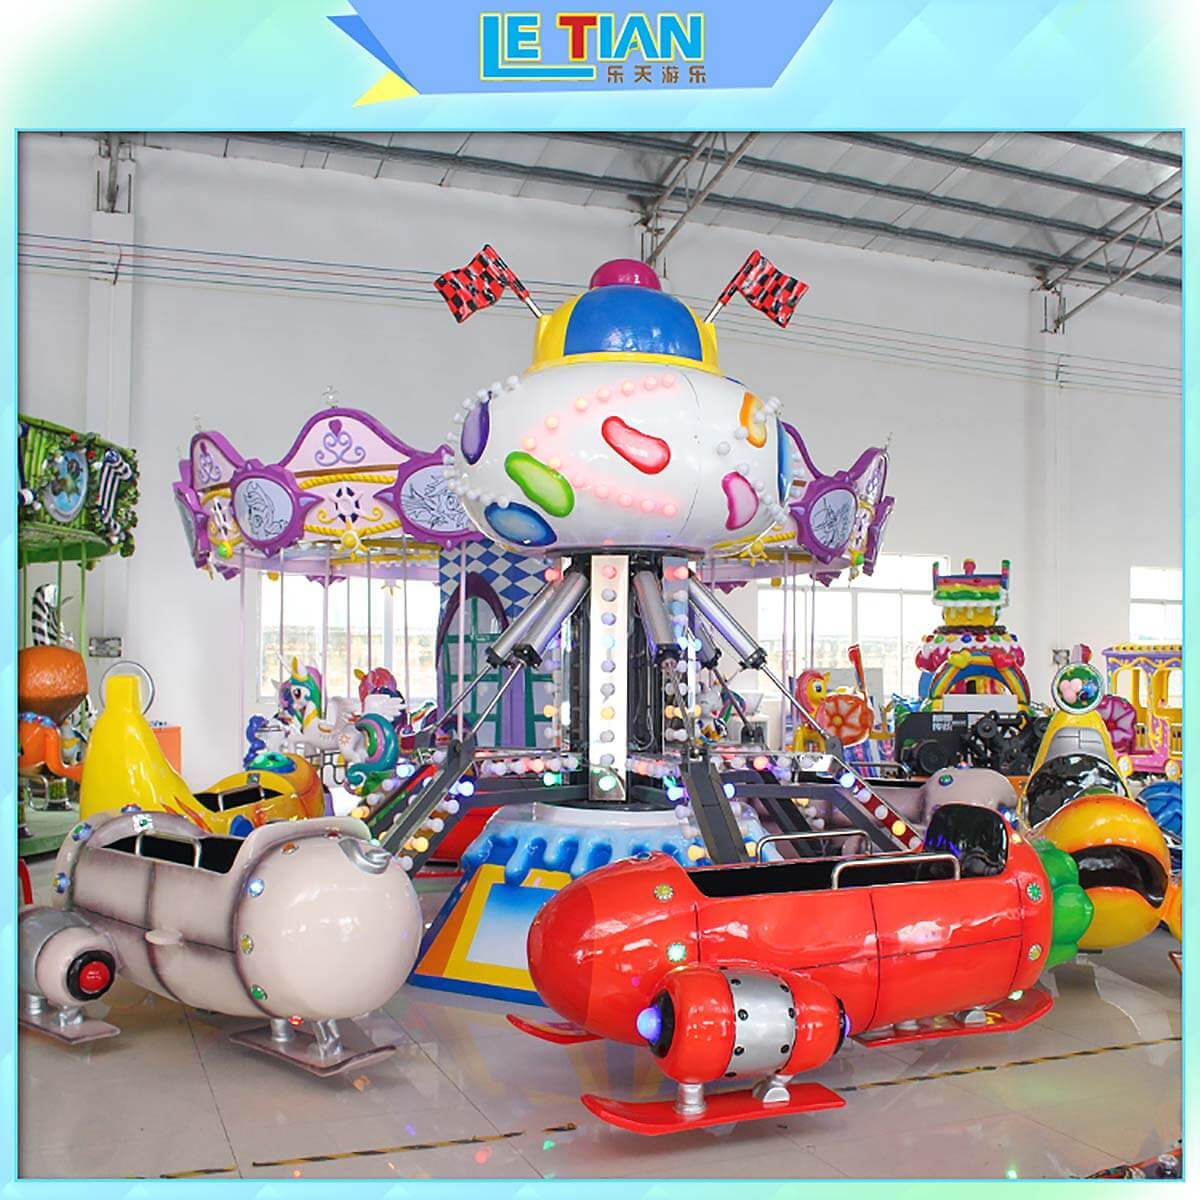 LETIAN rolling funfair rides for business children's palace-2